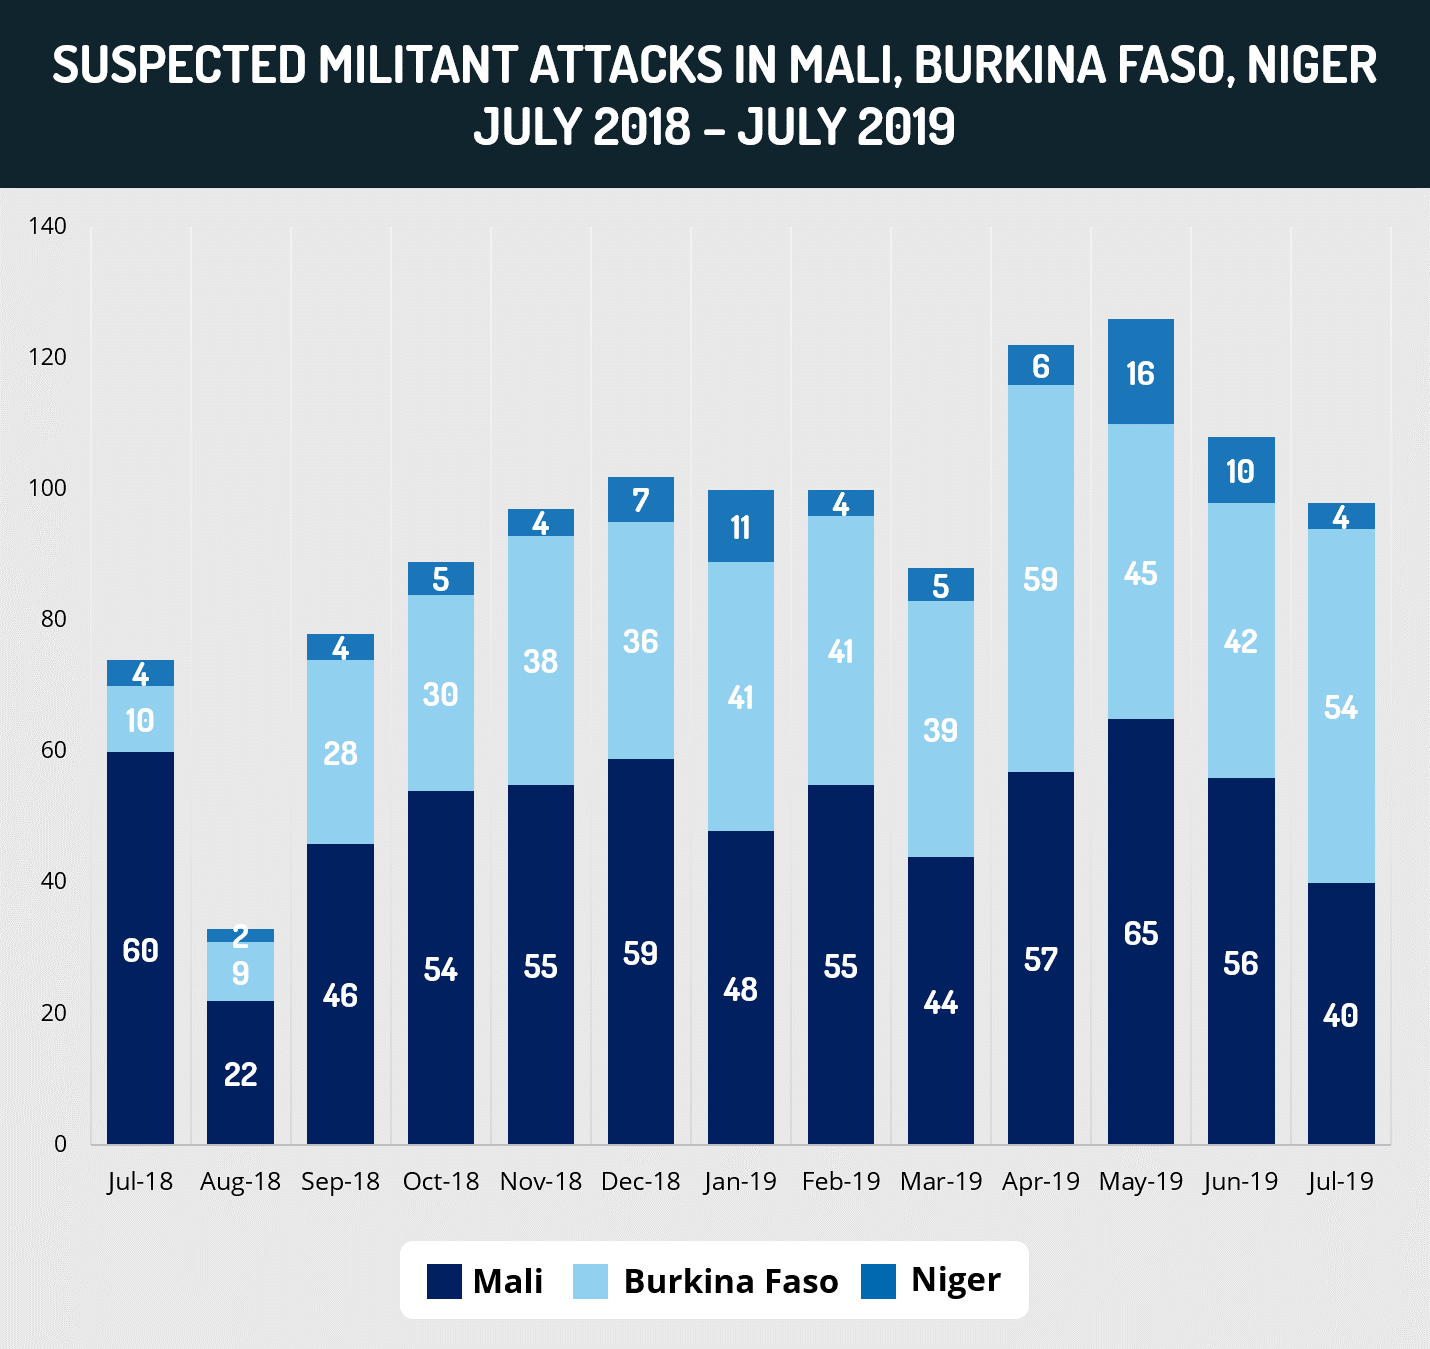 Suspected Militant Attacks in Mali, Burkina Faso, Niger July 2018 - July 2019